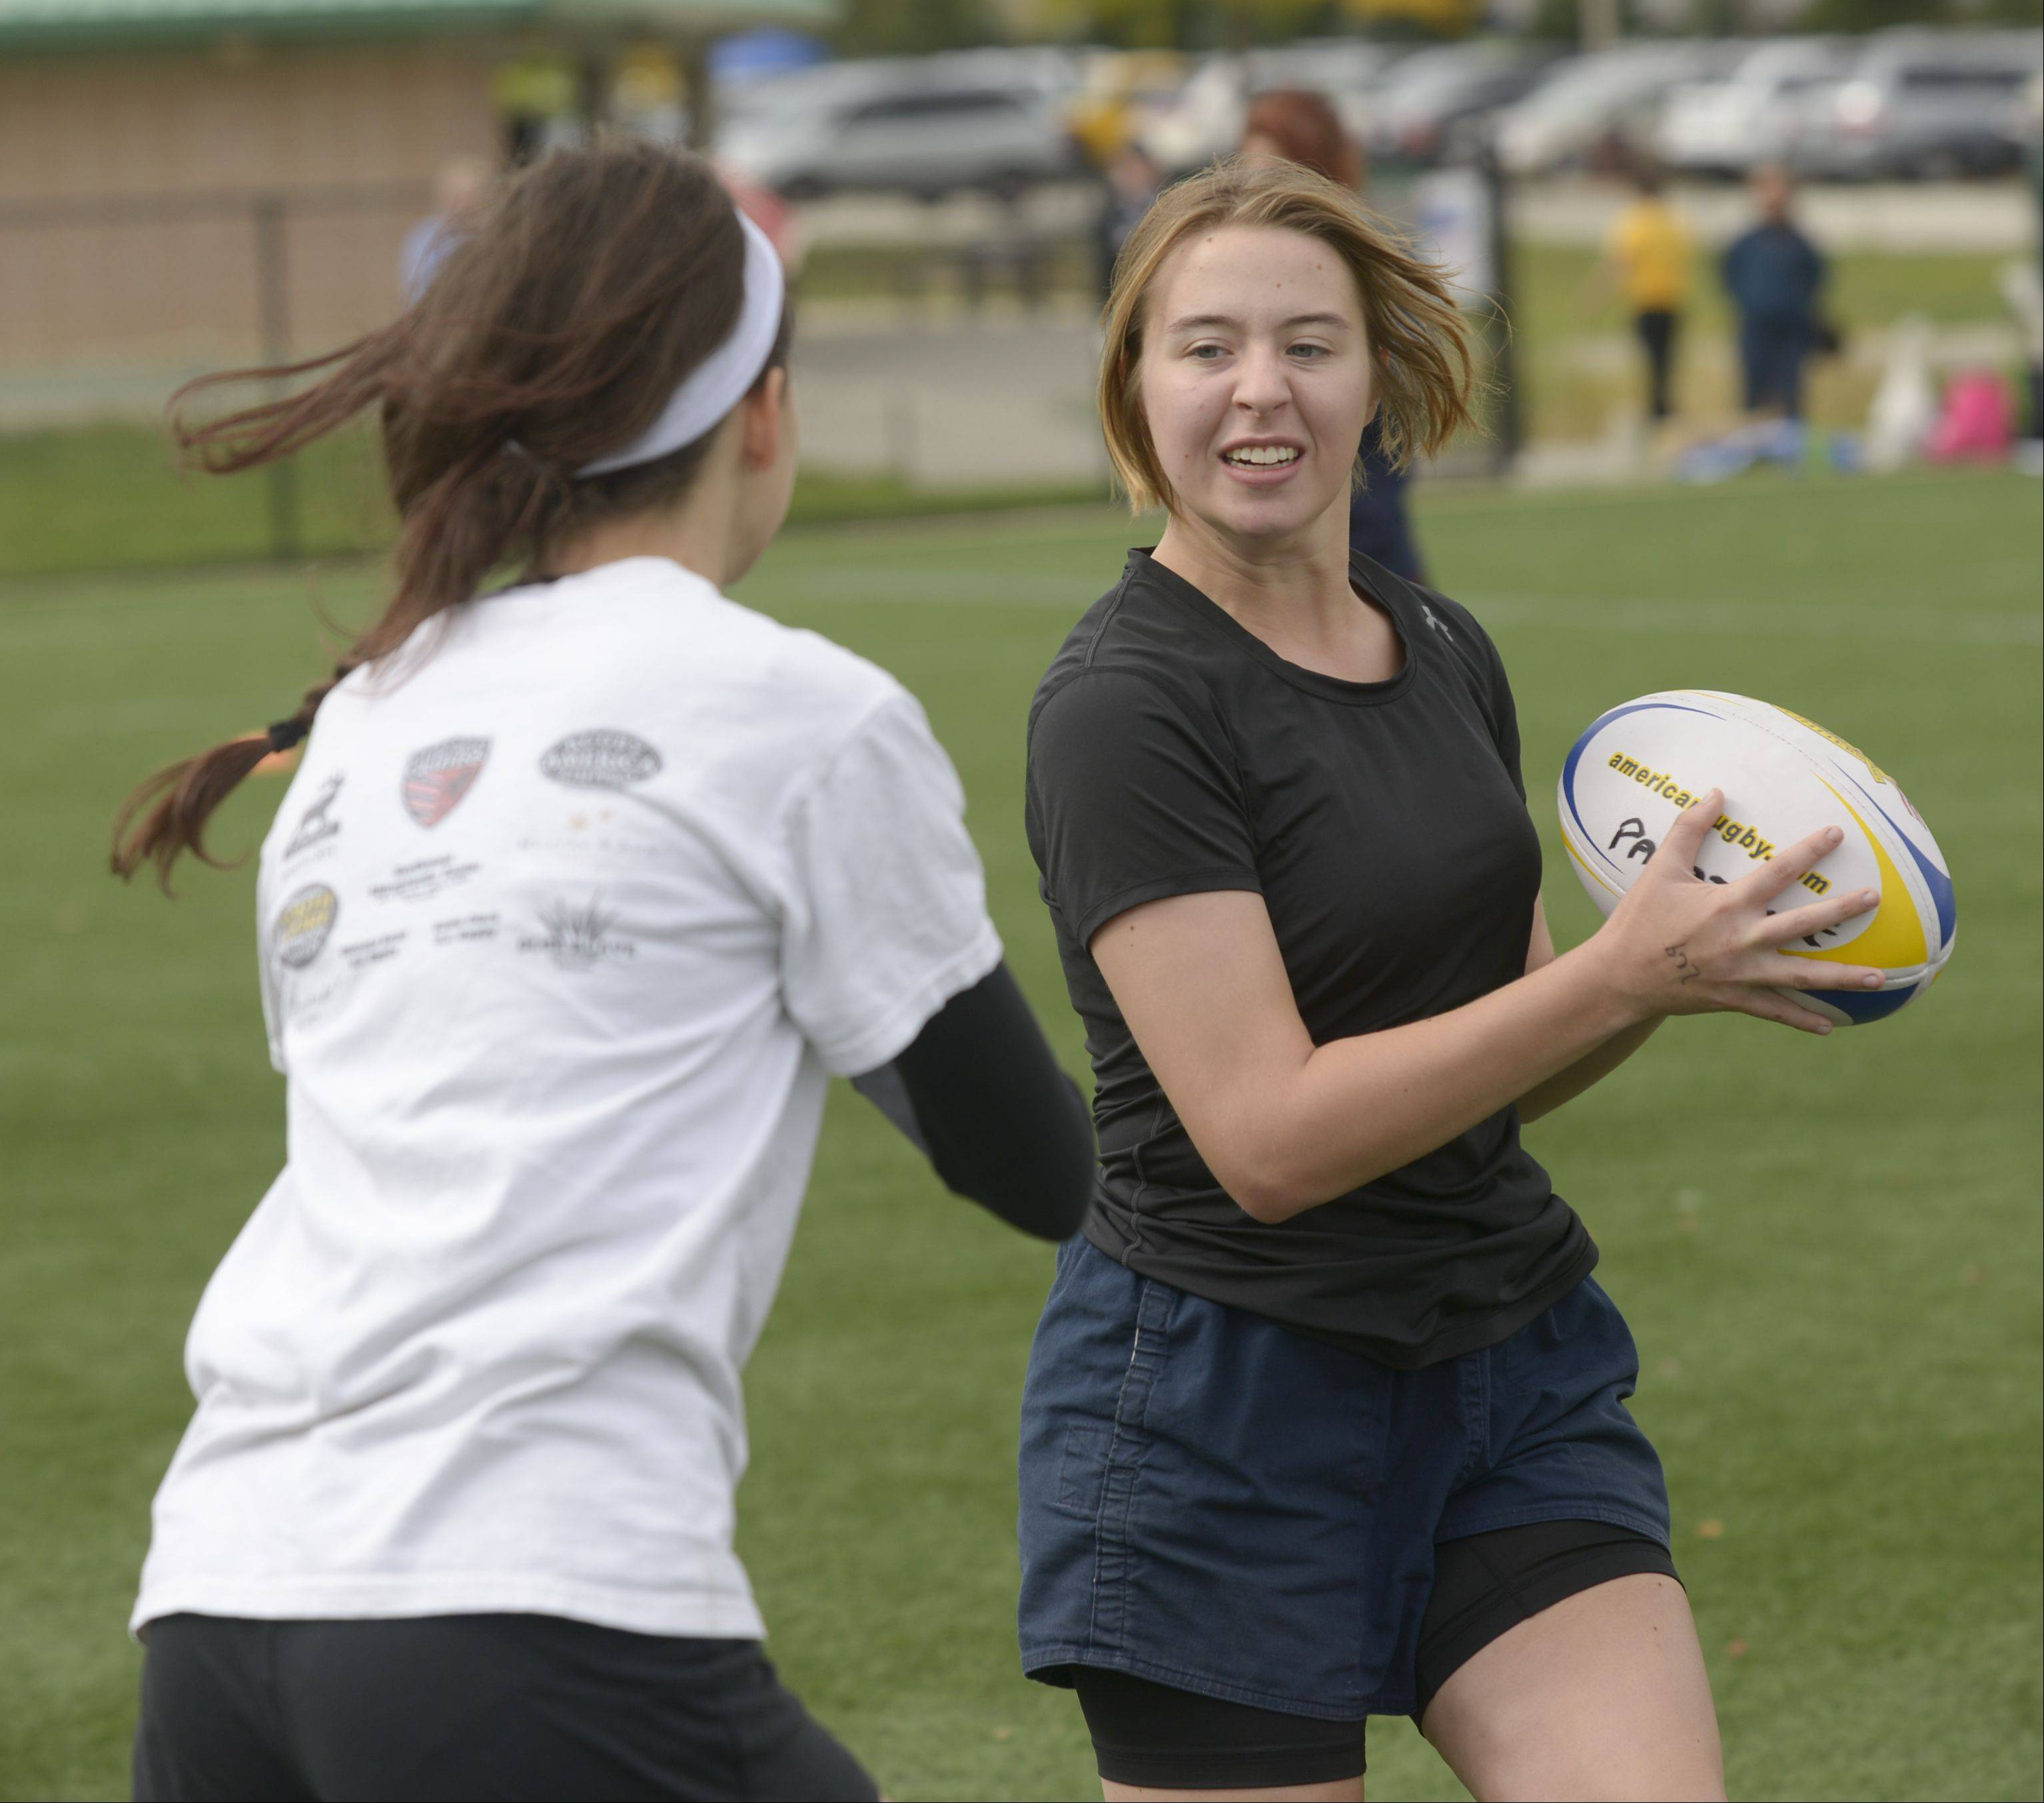 Maeve Gilbert, 14 of Chicago, left and Nicole Southerland, 15, of Palatine, run a drill Sunday during the Girls Day of Rugby hosted by the Illinois Youth Rugby Association at Olympic Park in Schaumburg.